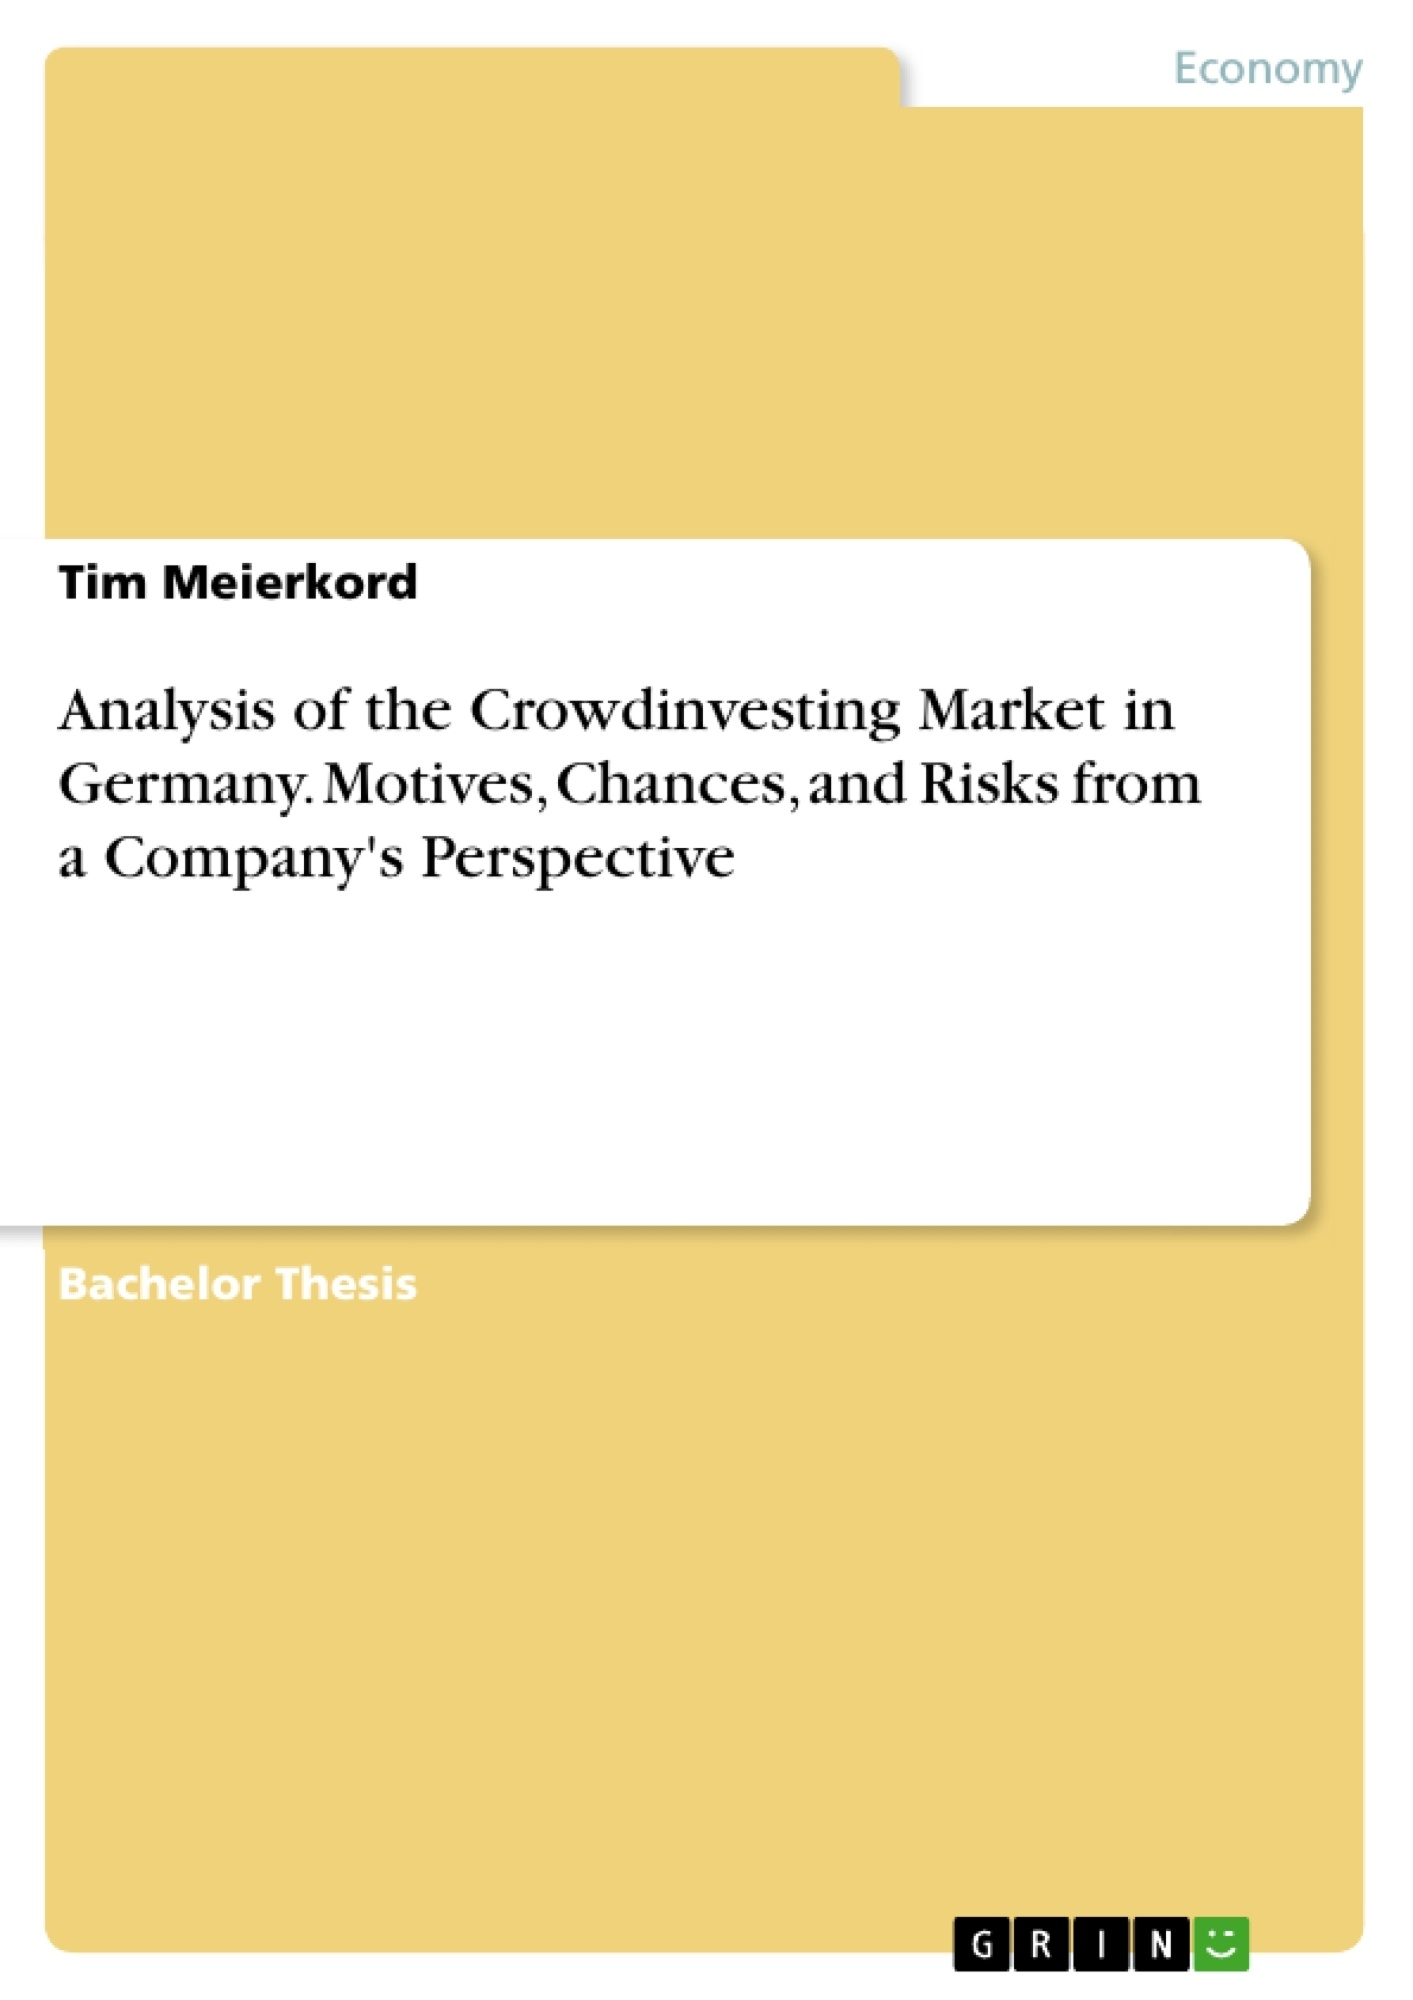 Title: Analysis of the Crowdinvesting Market in Germany. Motives, Chances, and Risks from a Company's Perspective